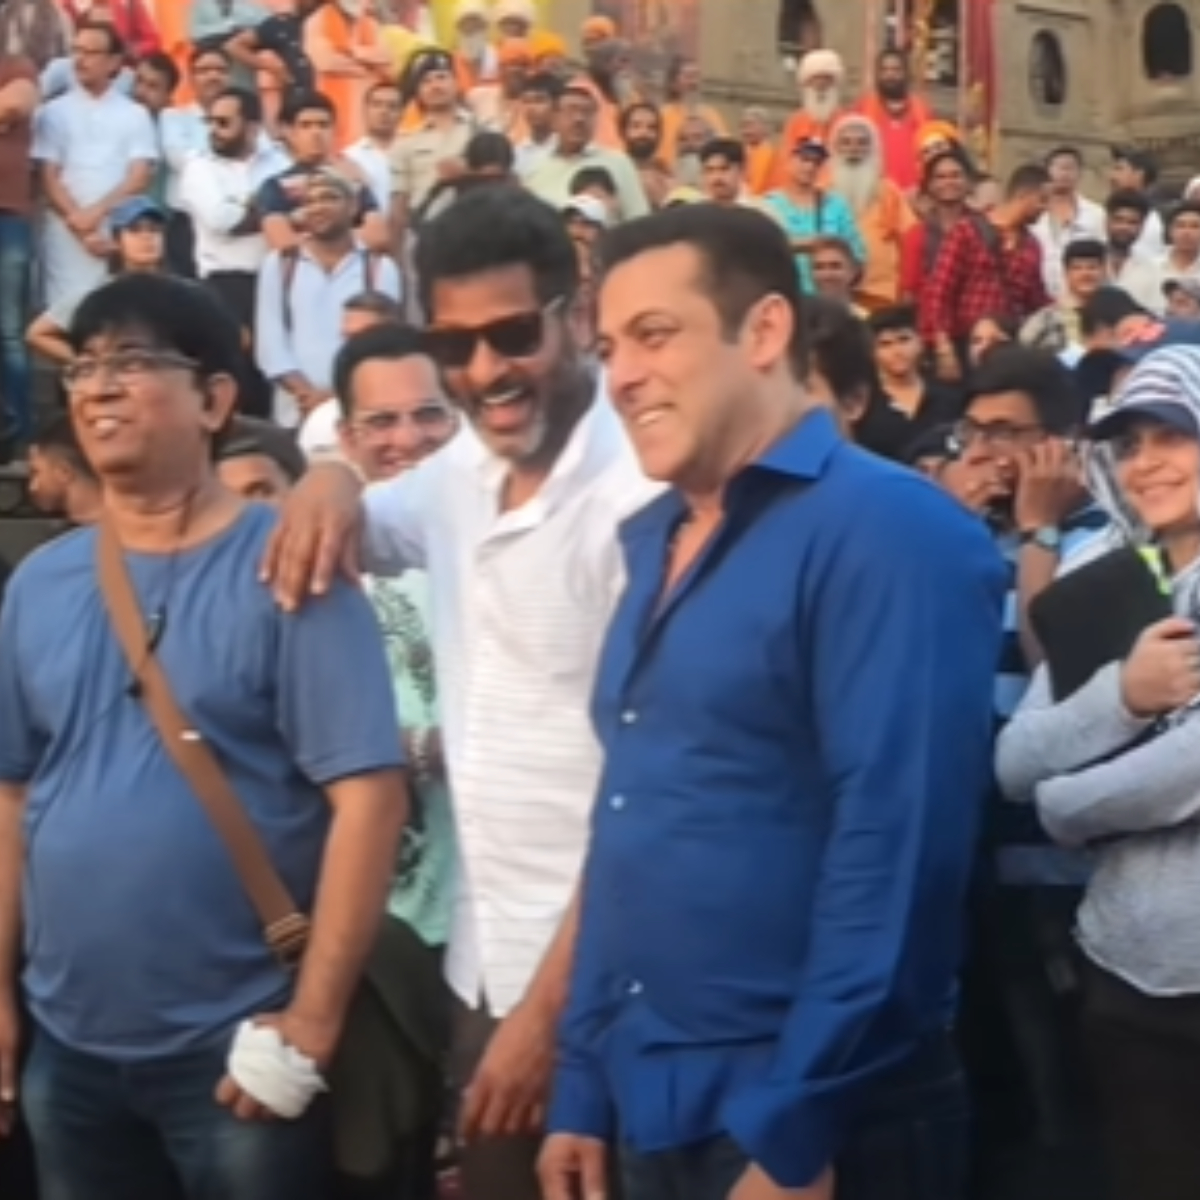 Dabangg 3: Salman Khan is seen having a gala time in the BTS video of 'Hud Hud' with his team; Watch